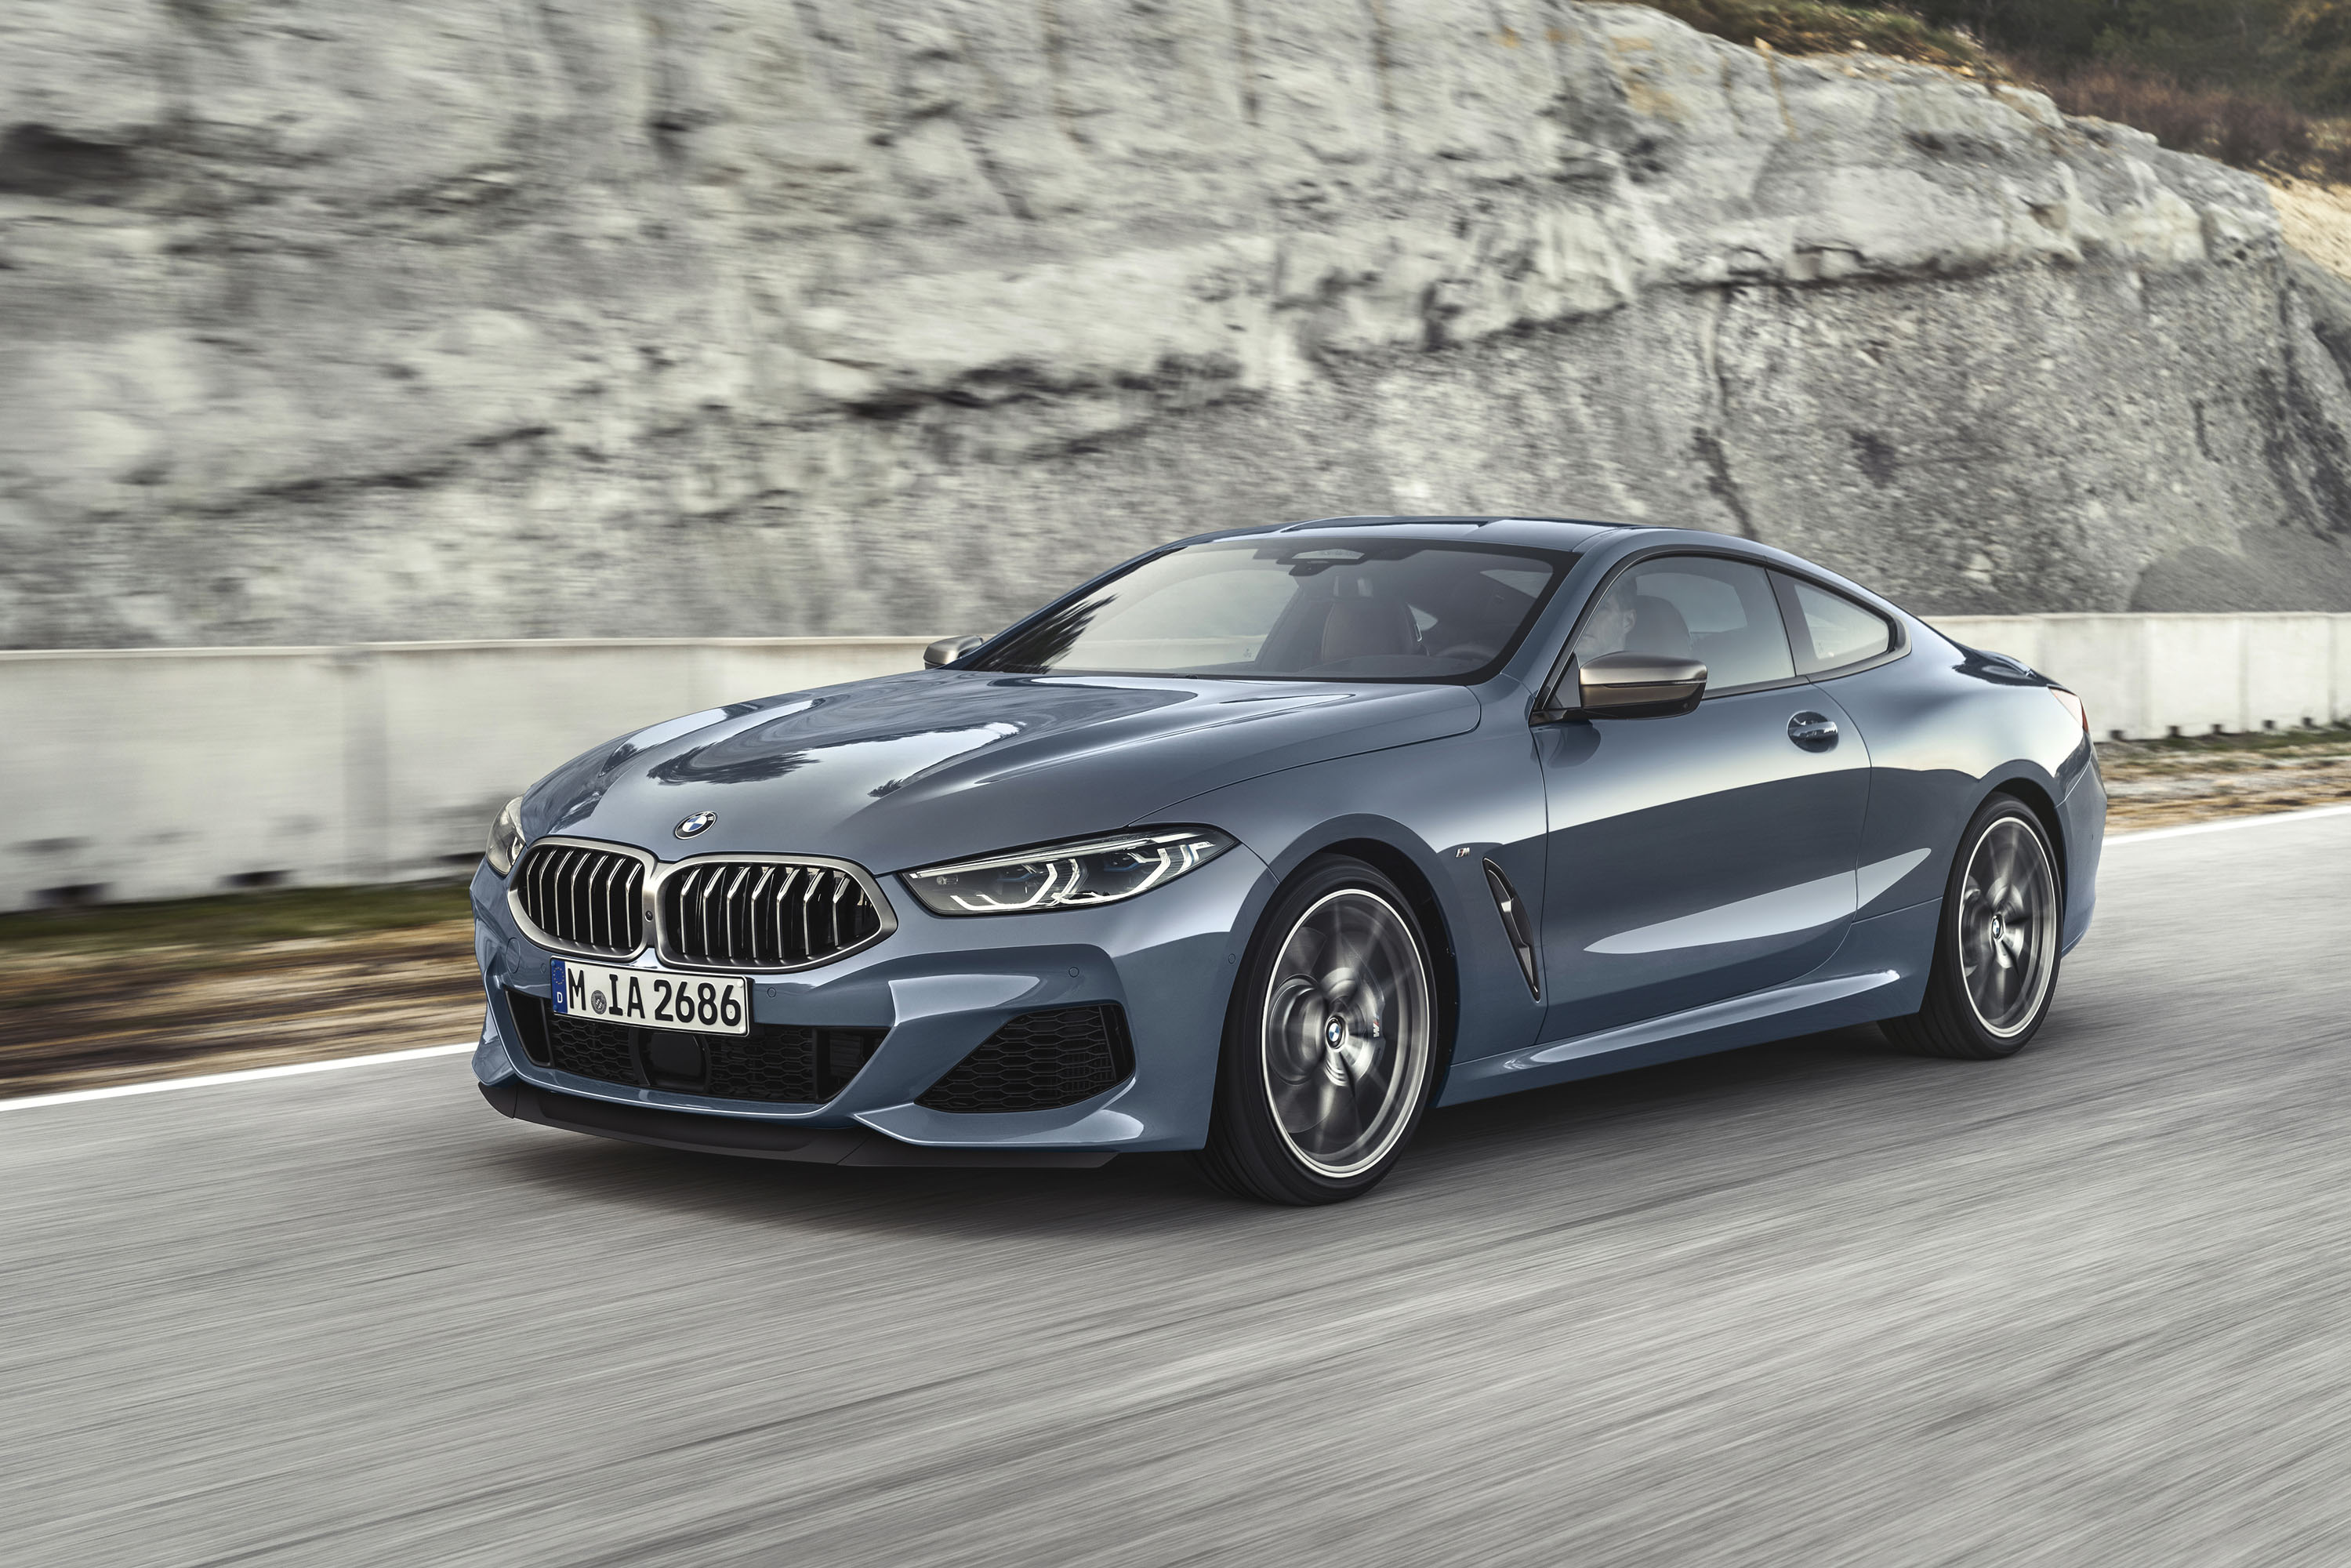 2019 Bmw M850i Priced From 112 895 Arrives In December